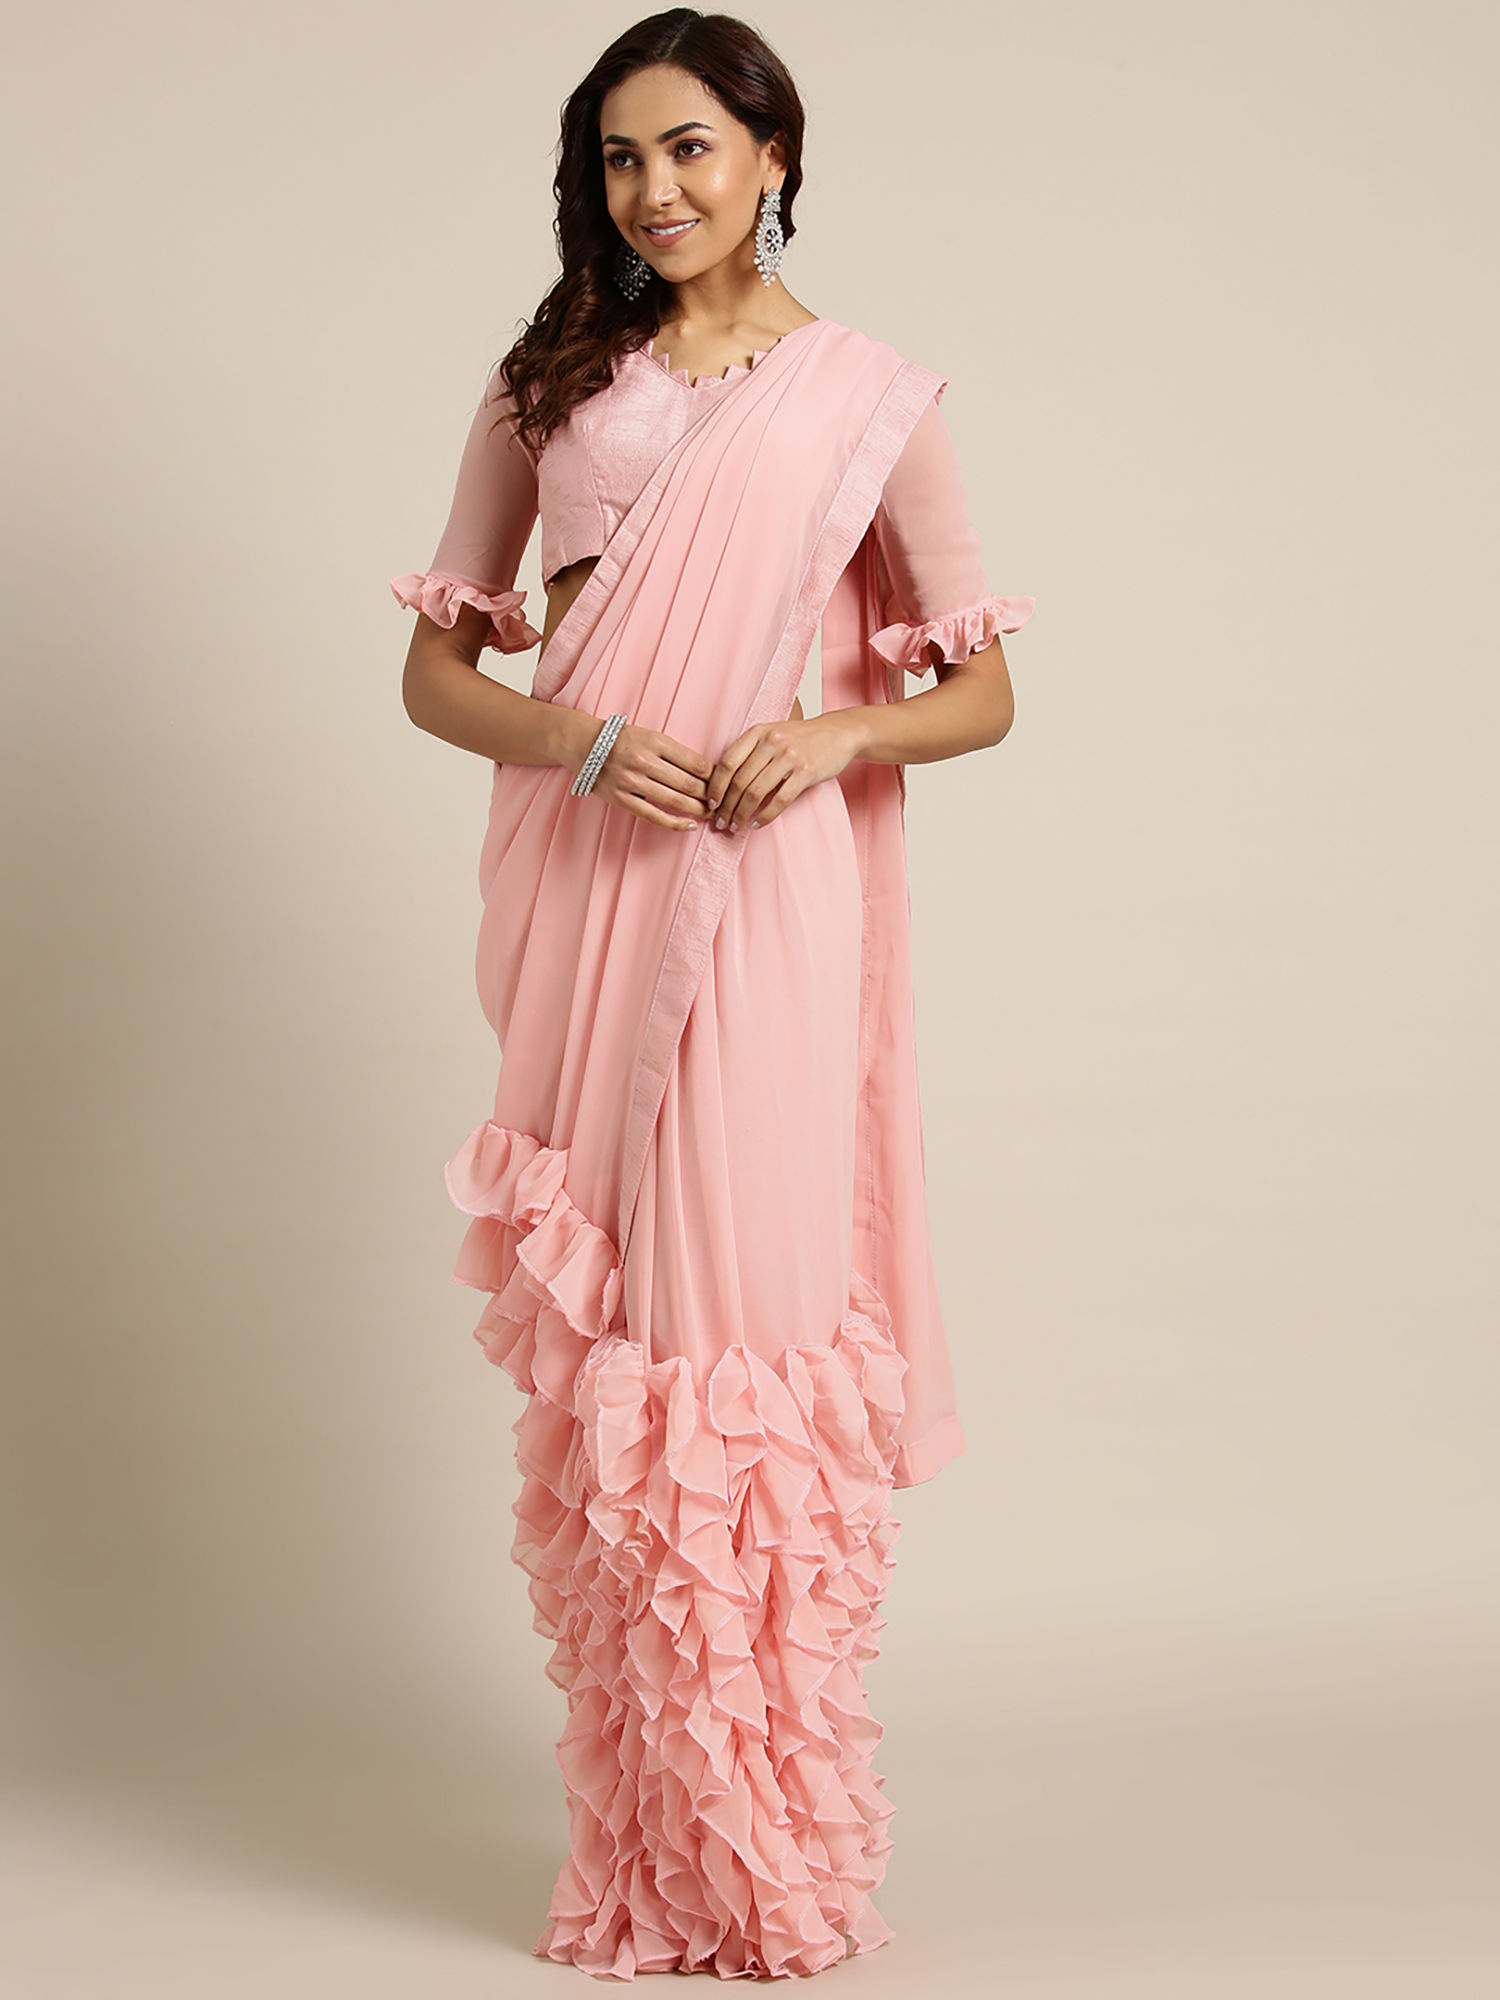 Party Wear Saree Online Buy Latest Designer Party Sarees At Best Prices Nykaa Fashion